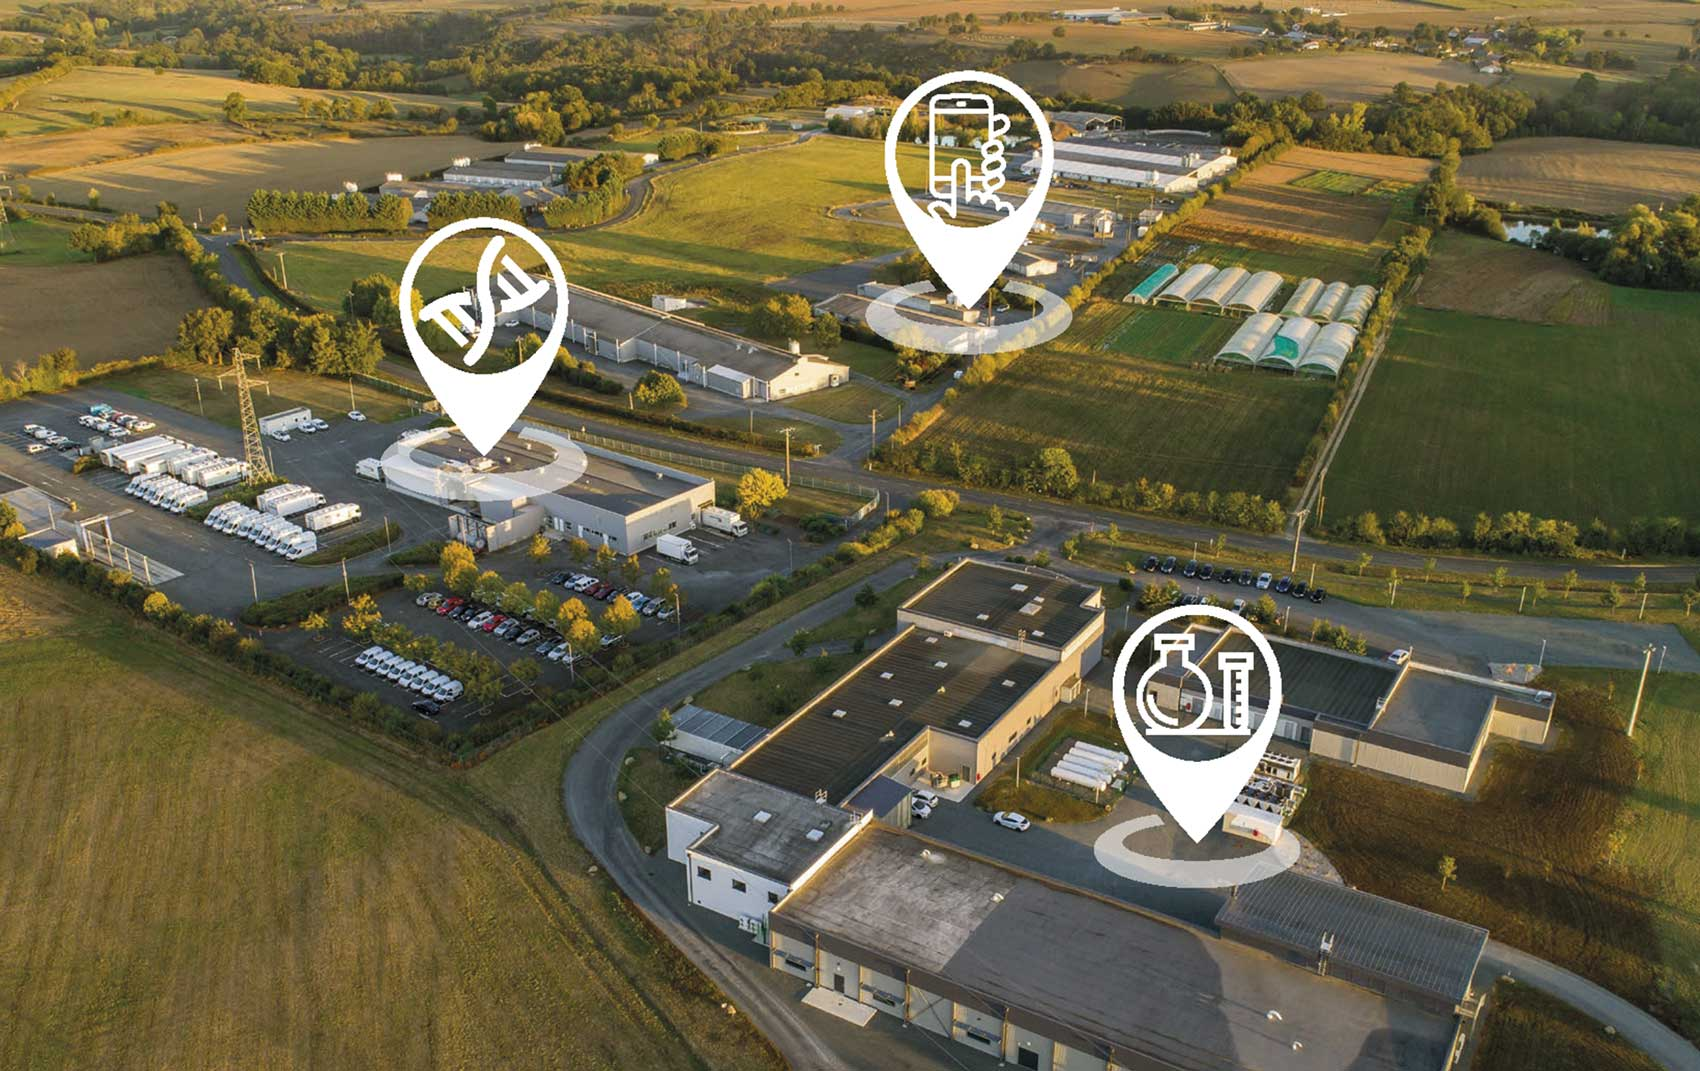 Aerial view of Animal Genetic Selection buildings